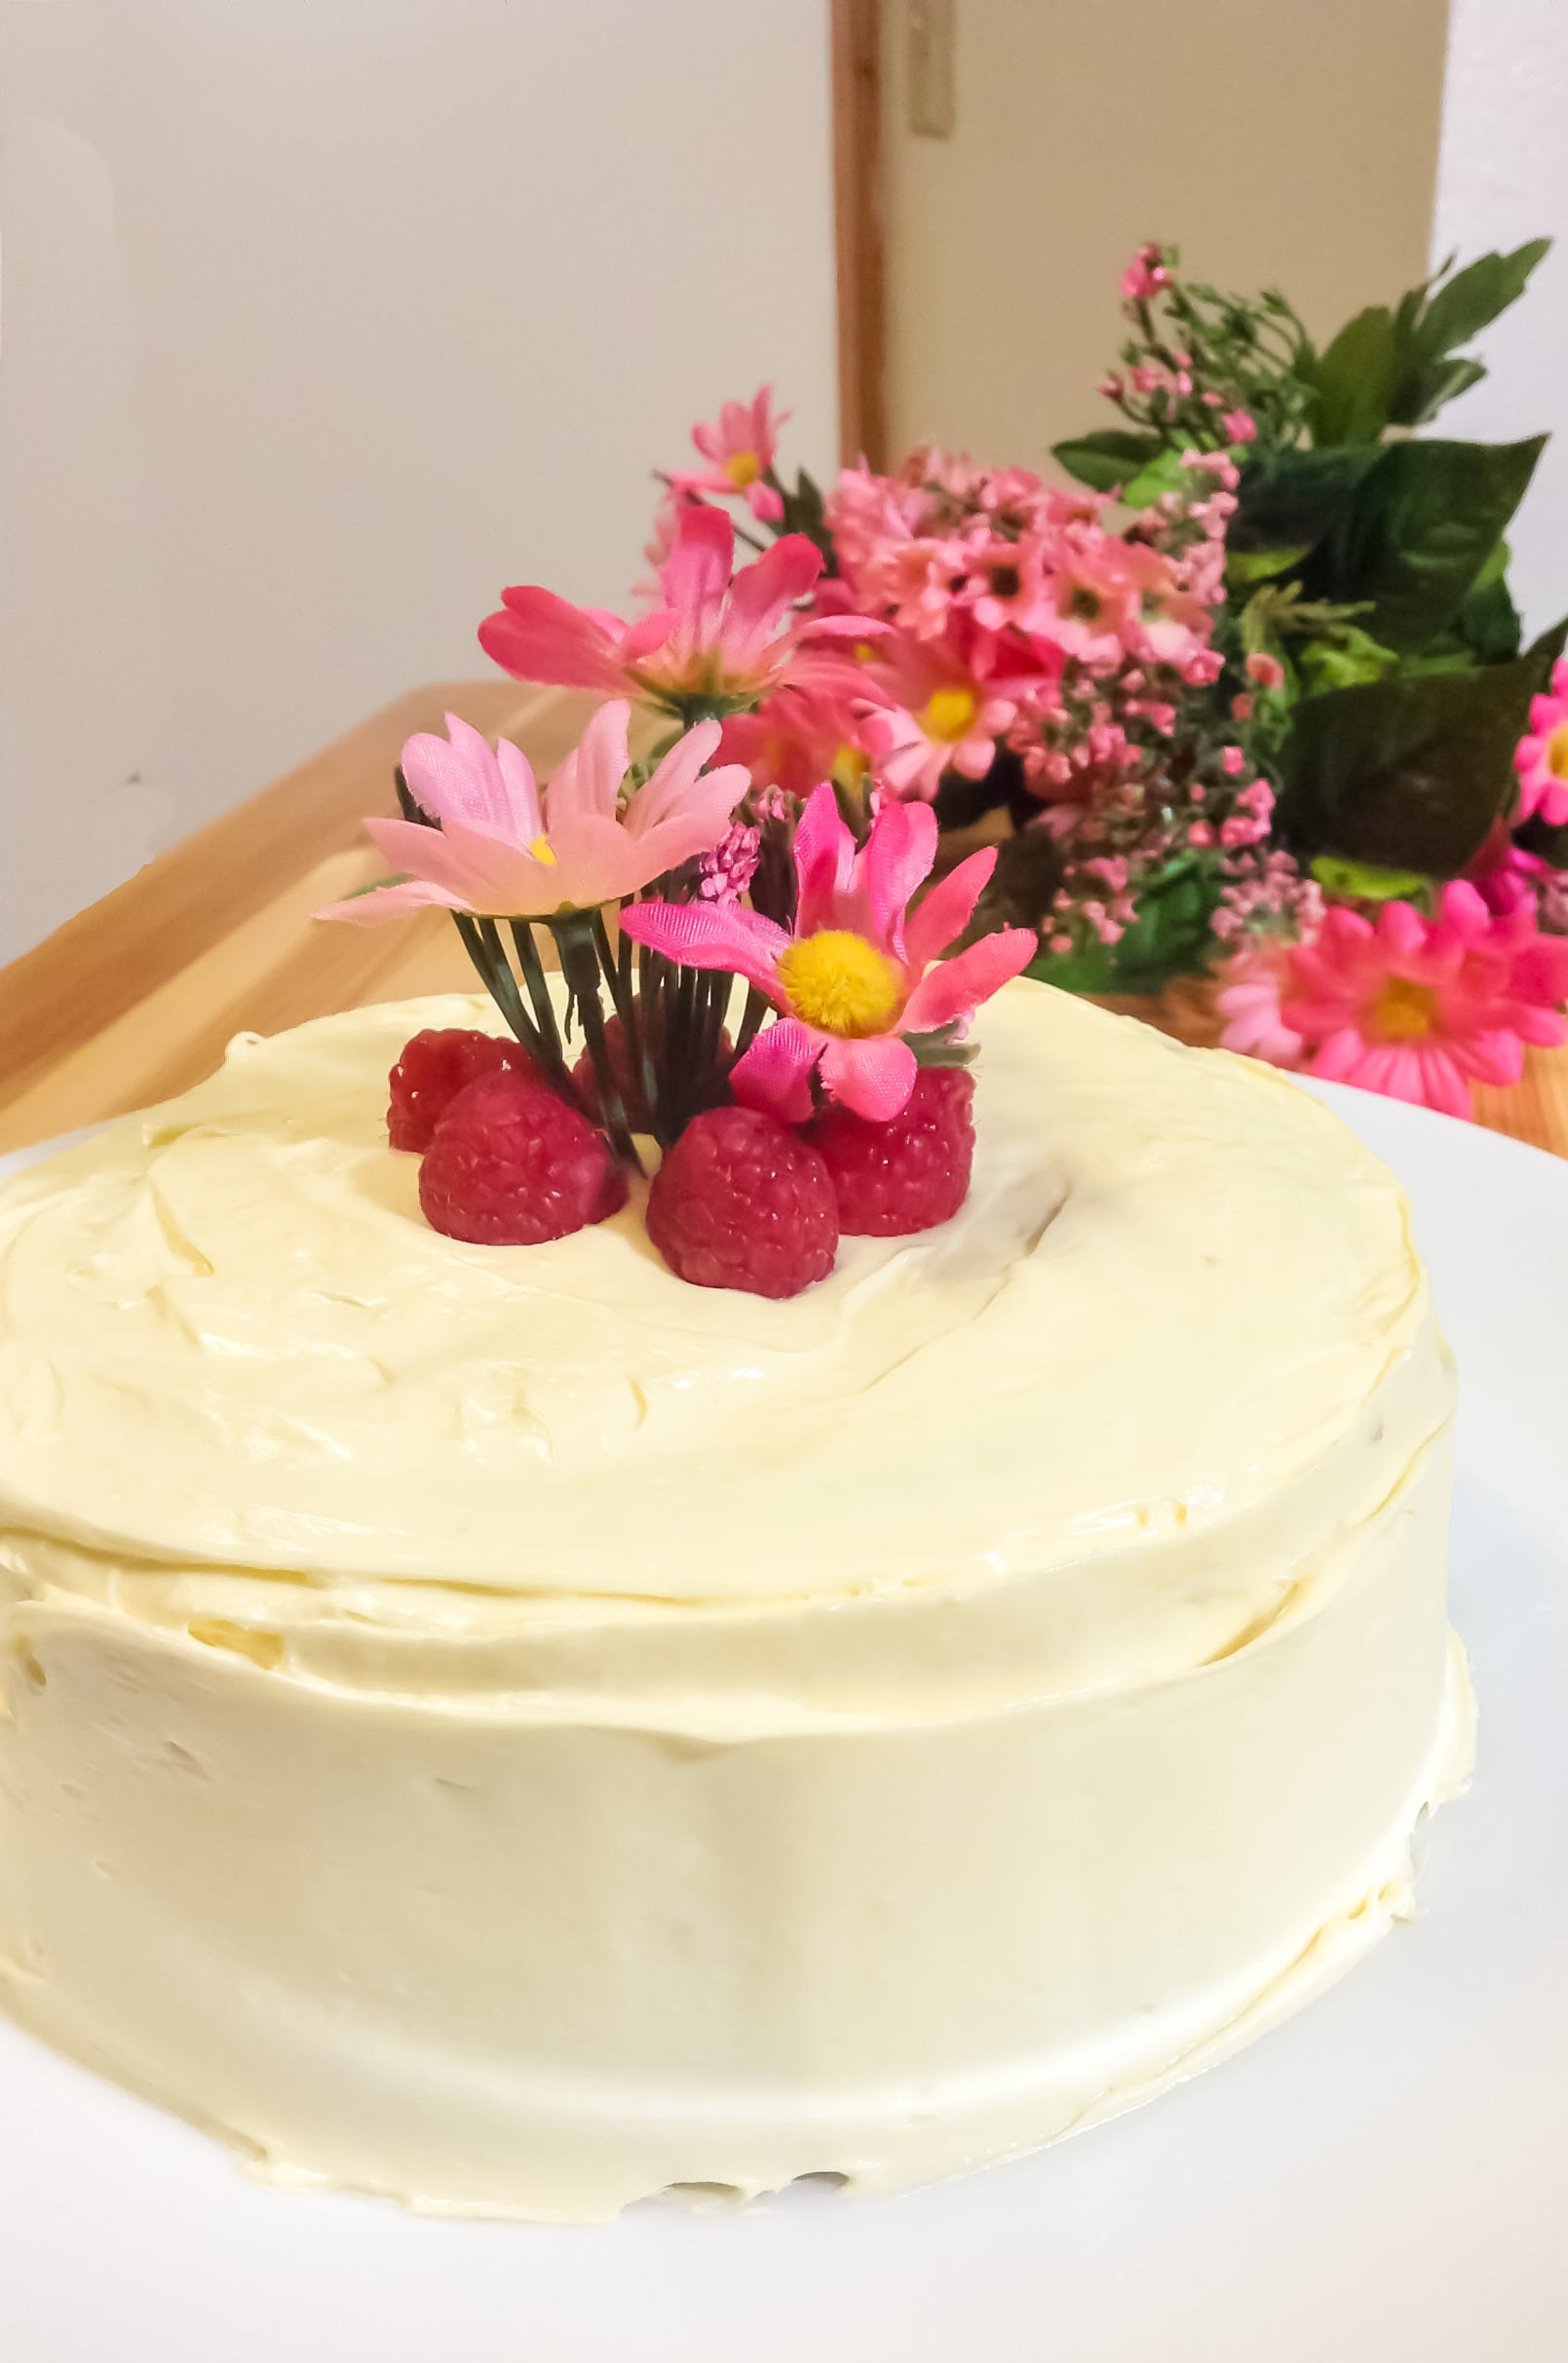 White cake topped with pink flowers and raspberries